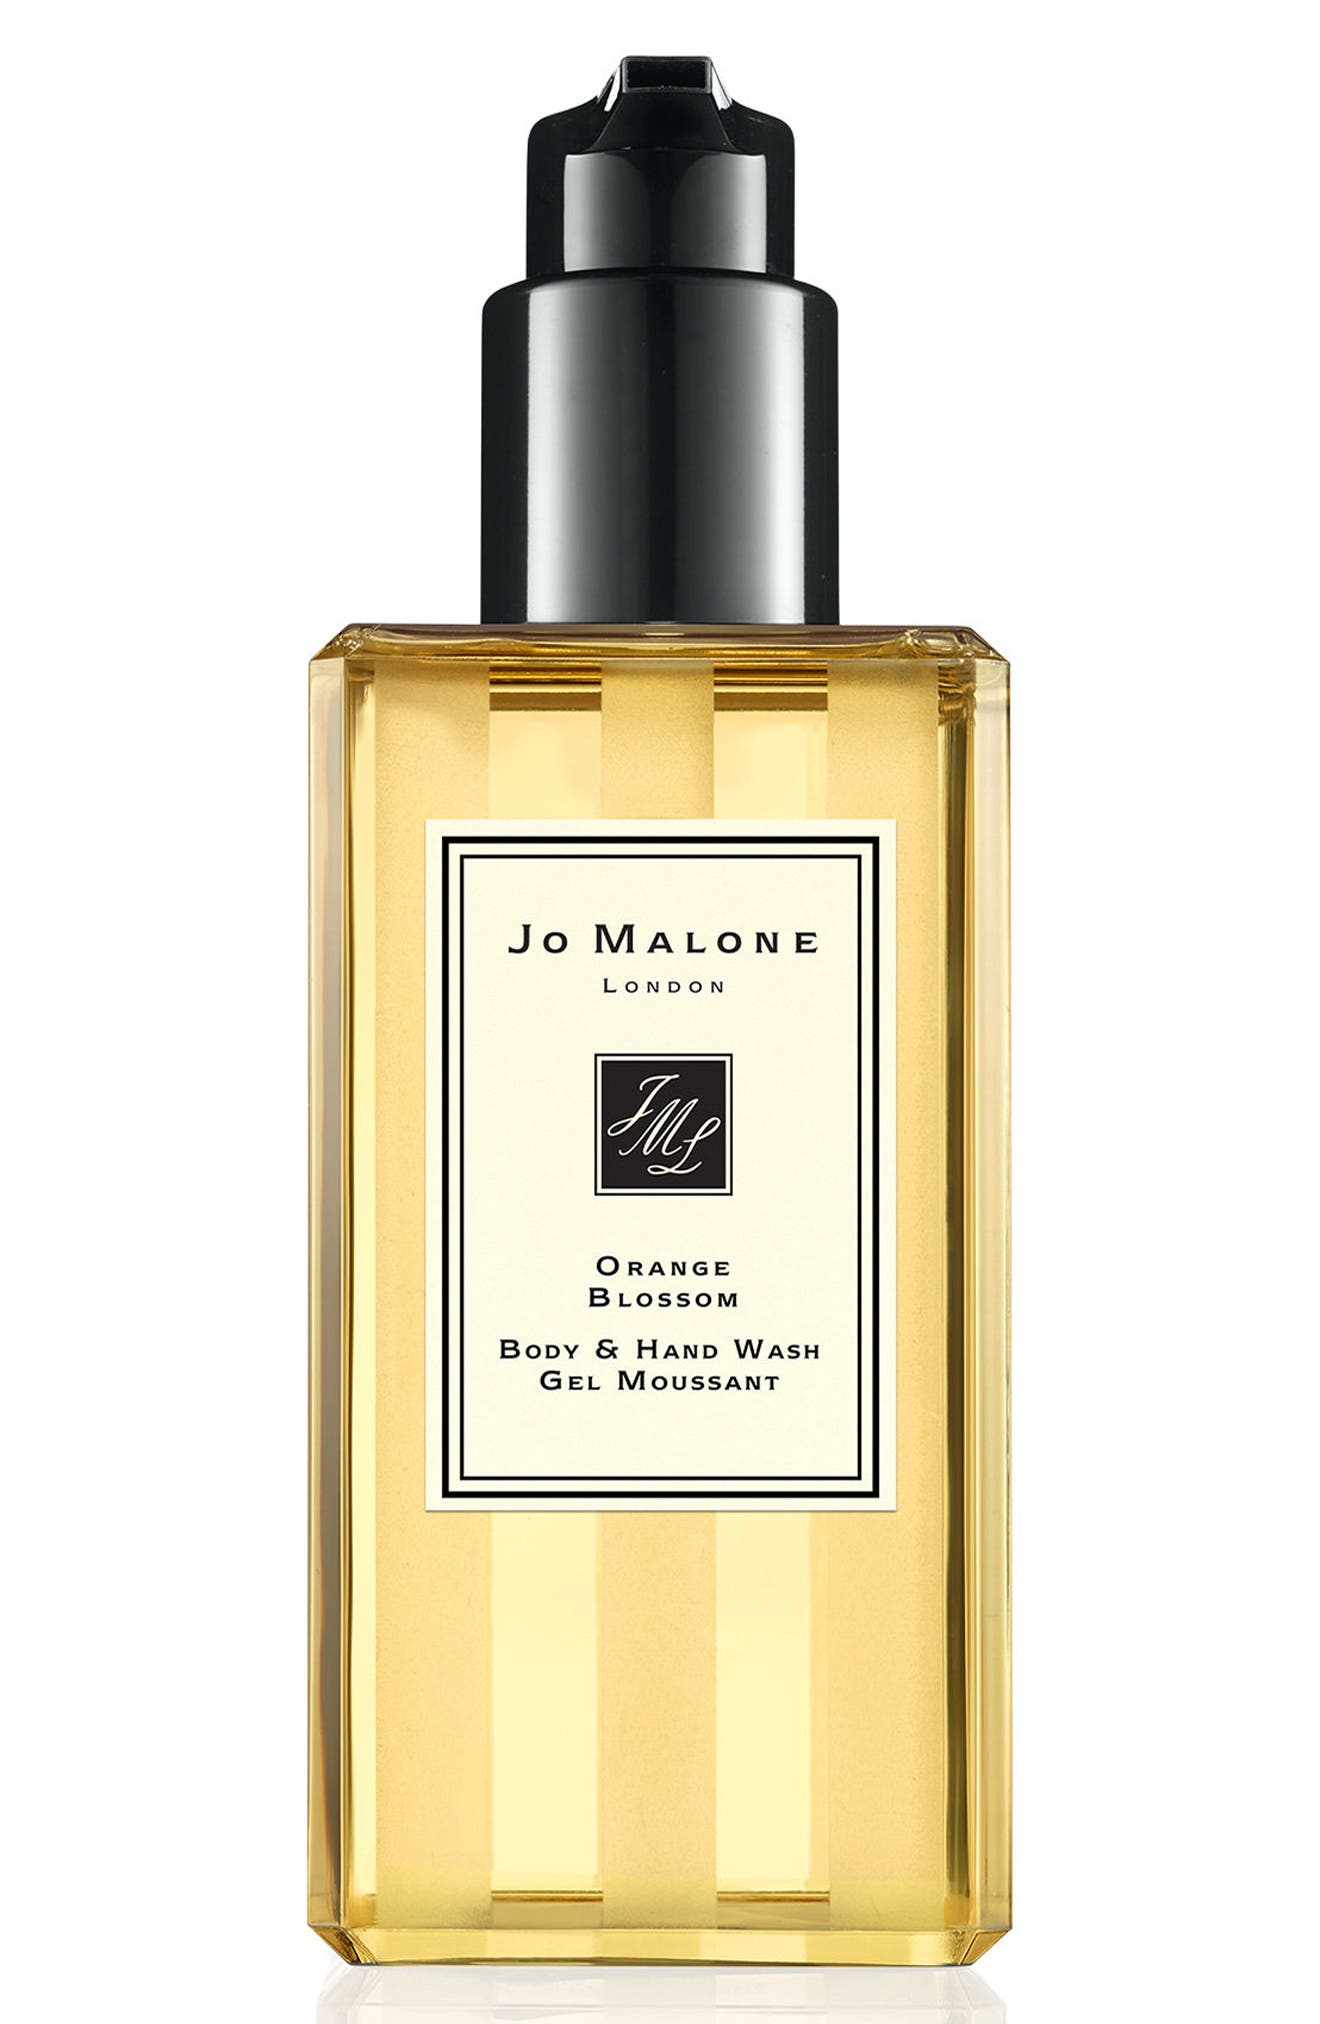 Jo Malone London™ 'Orange Blossom' Body & Hand Wash